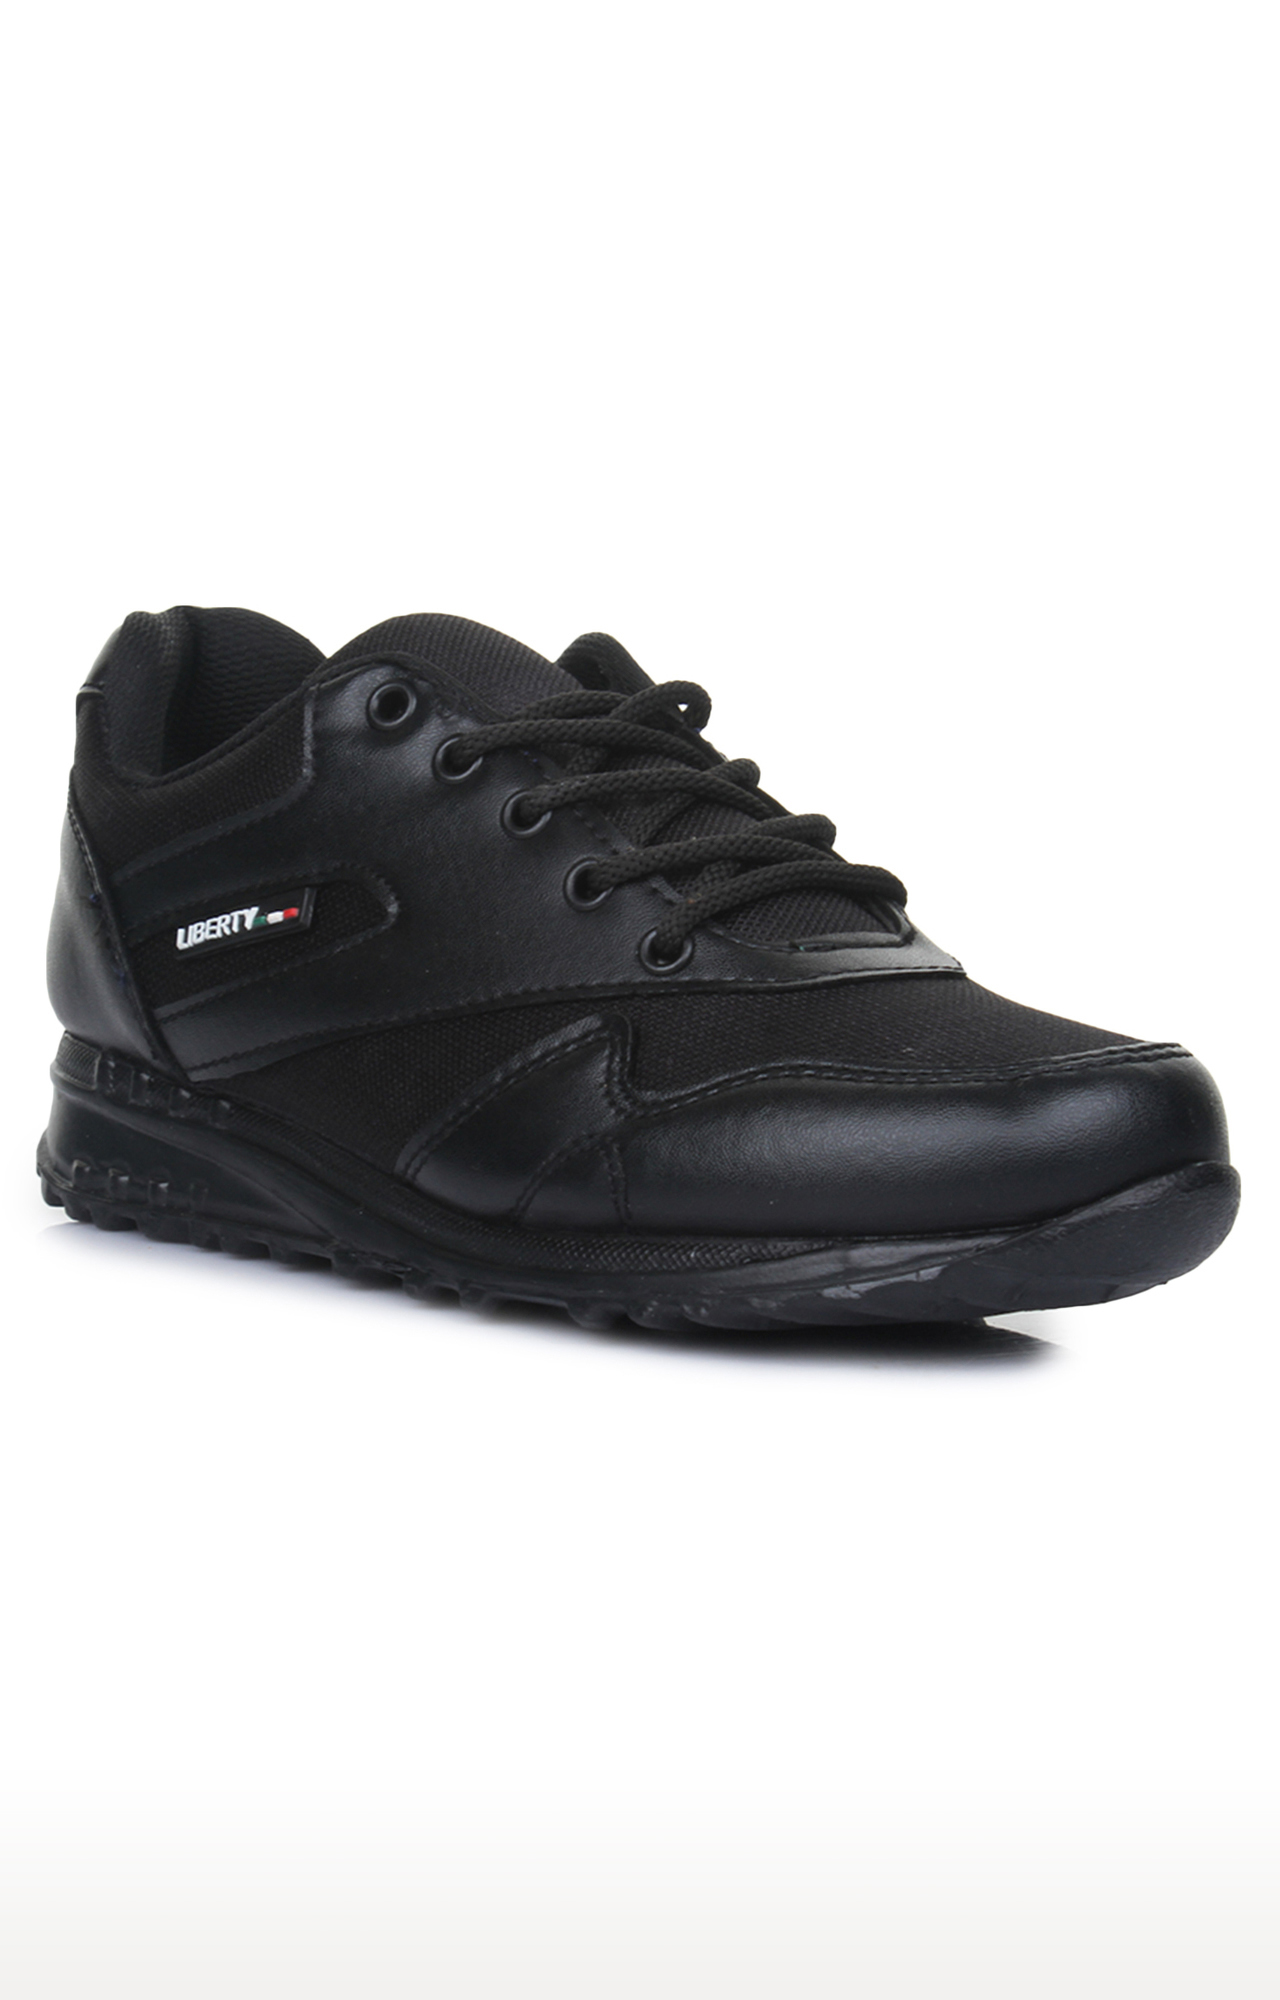 Liberty | Force 10 by Liberty Unisex Black Indoor Sports Shoes